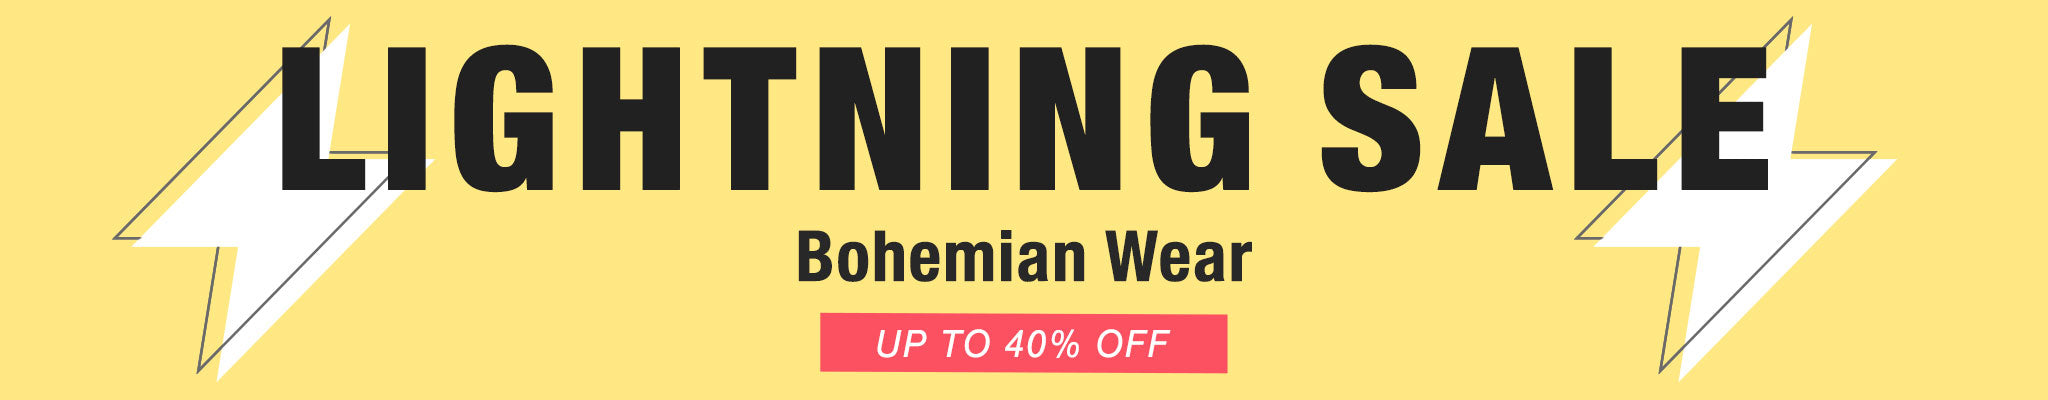 Bohemian Wear Lightning Sale